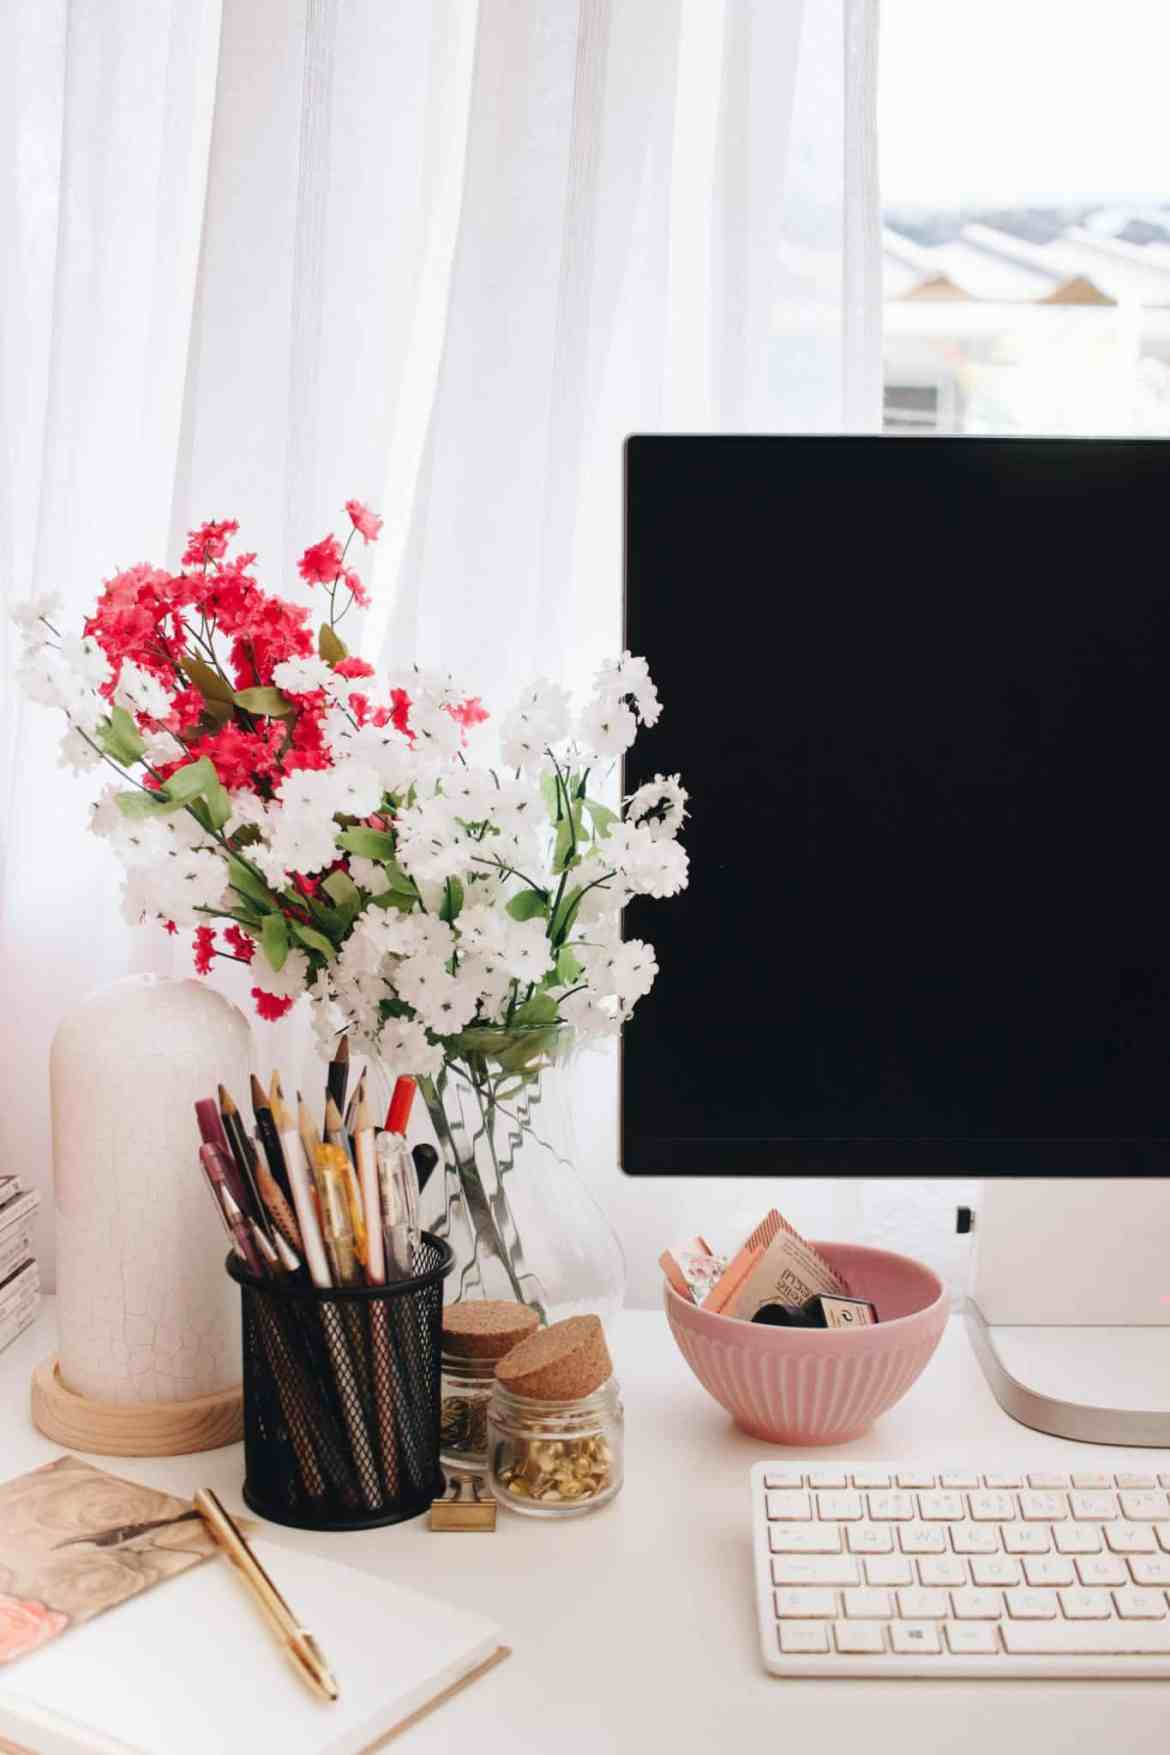 A computer screen on a desk in front of a window with flowers and other objects on the desk